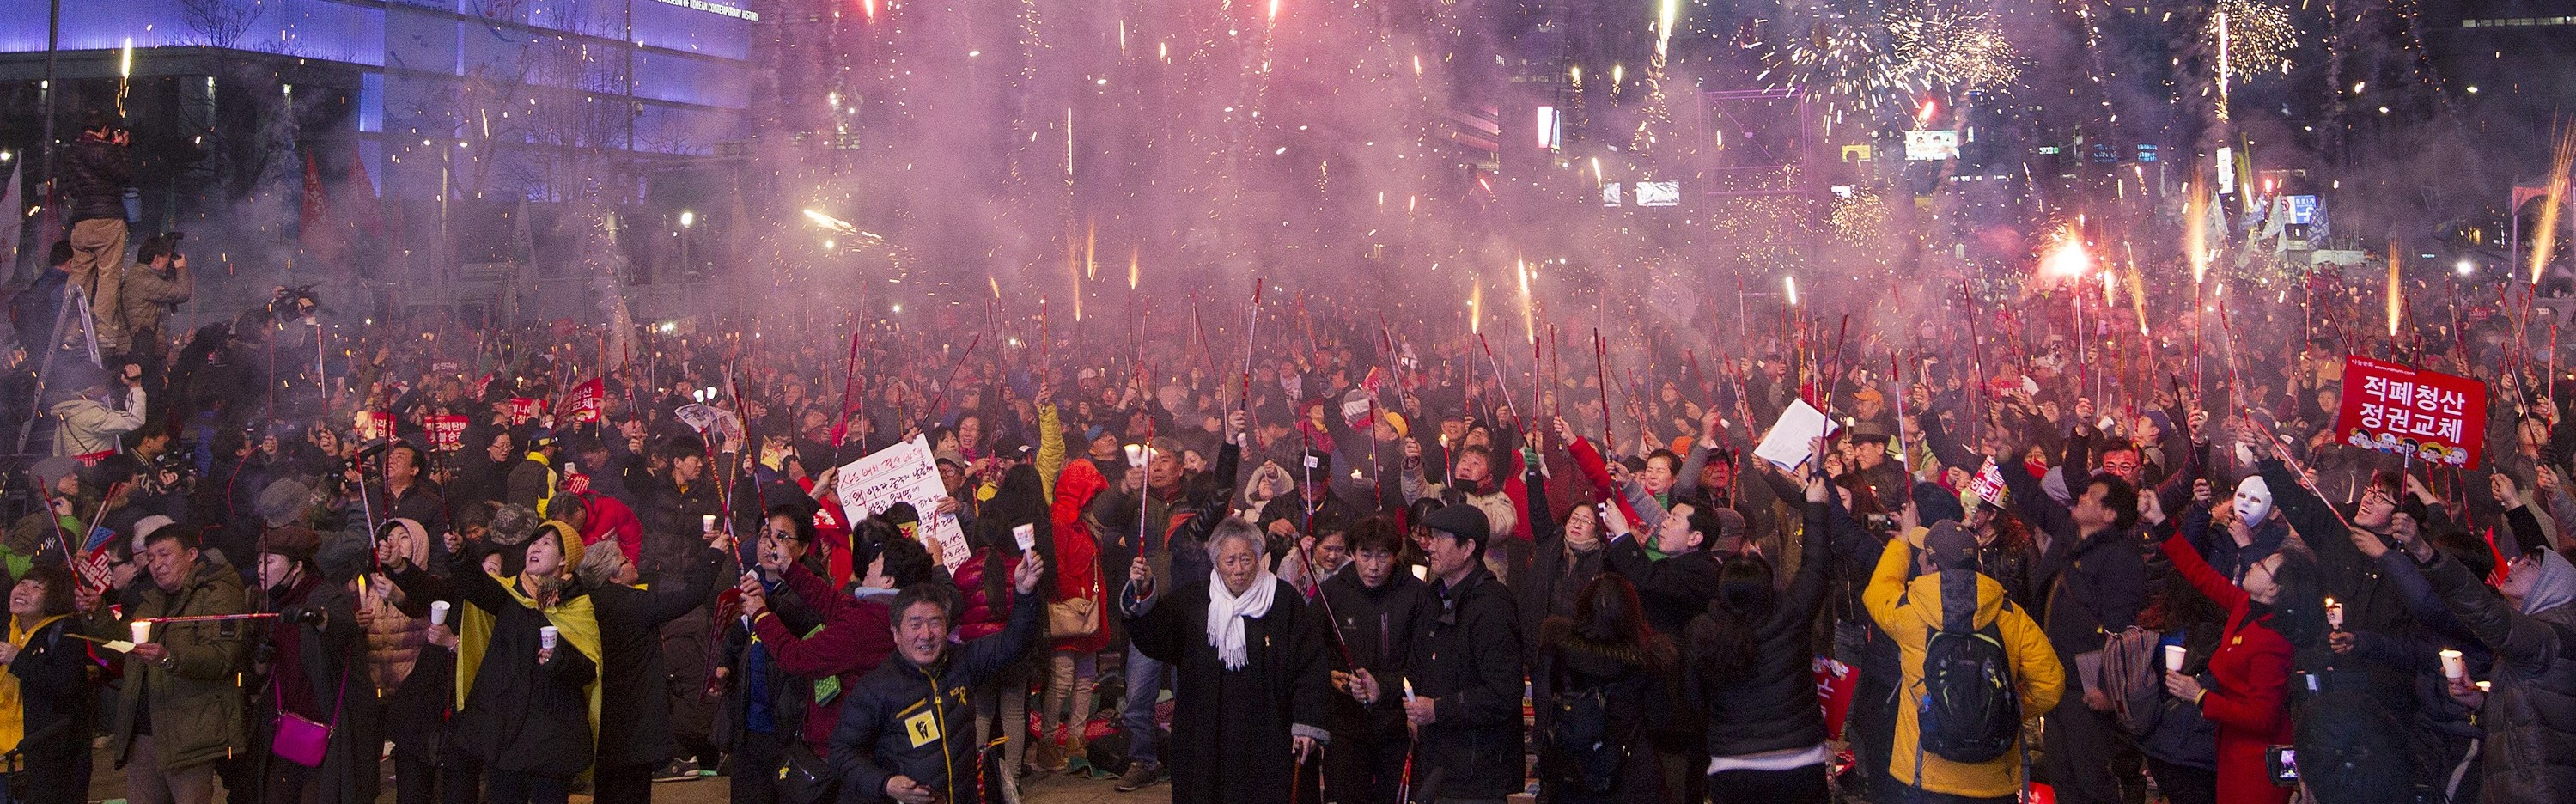 Demonstrators celebrate the impeachment of South Korea's President Park Geun-hye, March 2017 (Photo: Getty Images/Anadolu Agency)